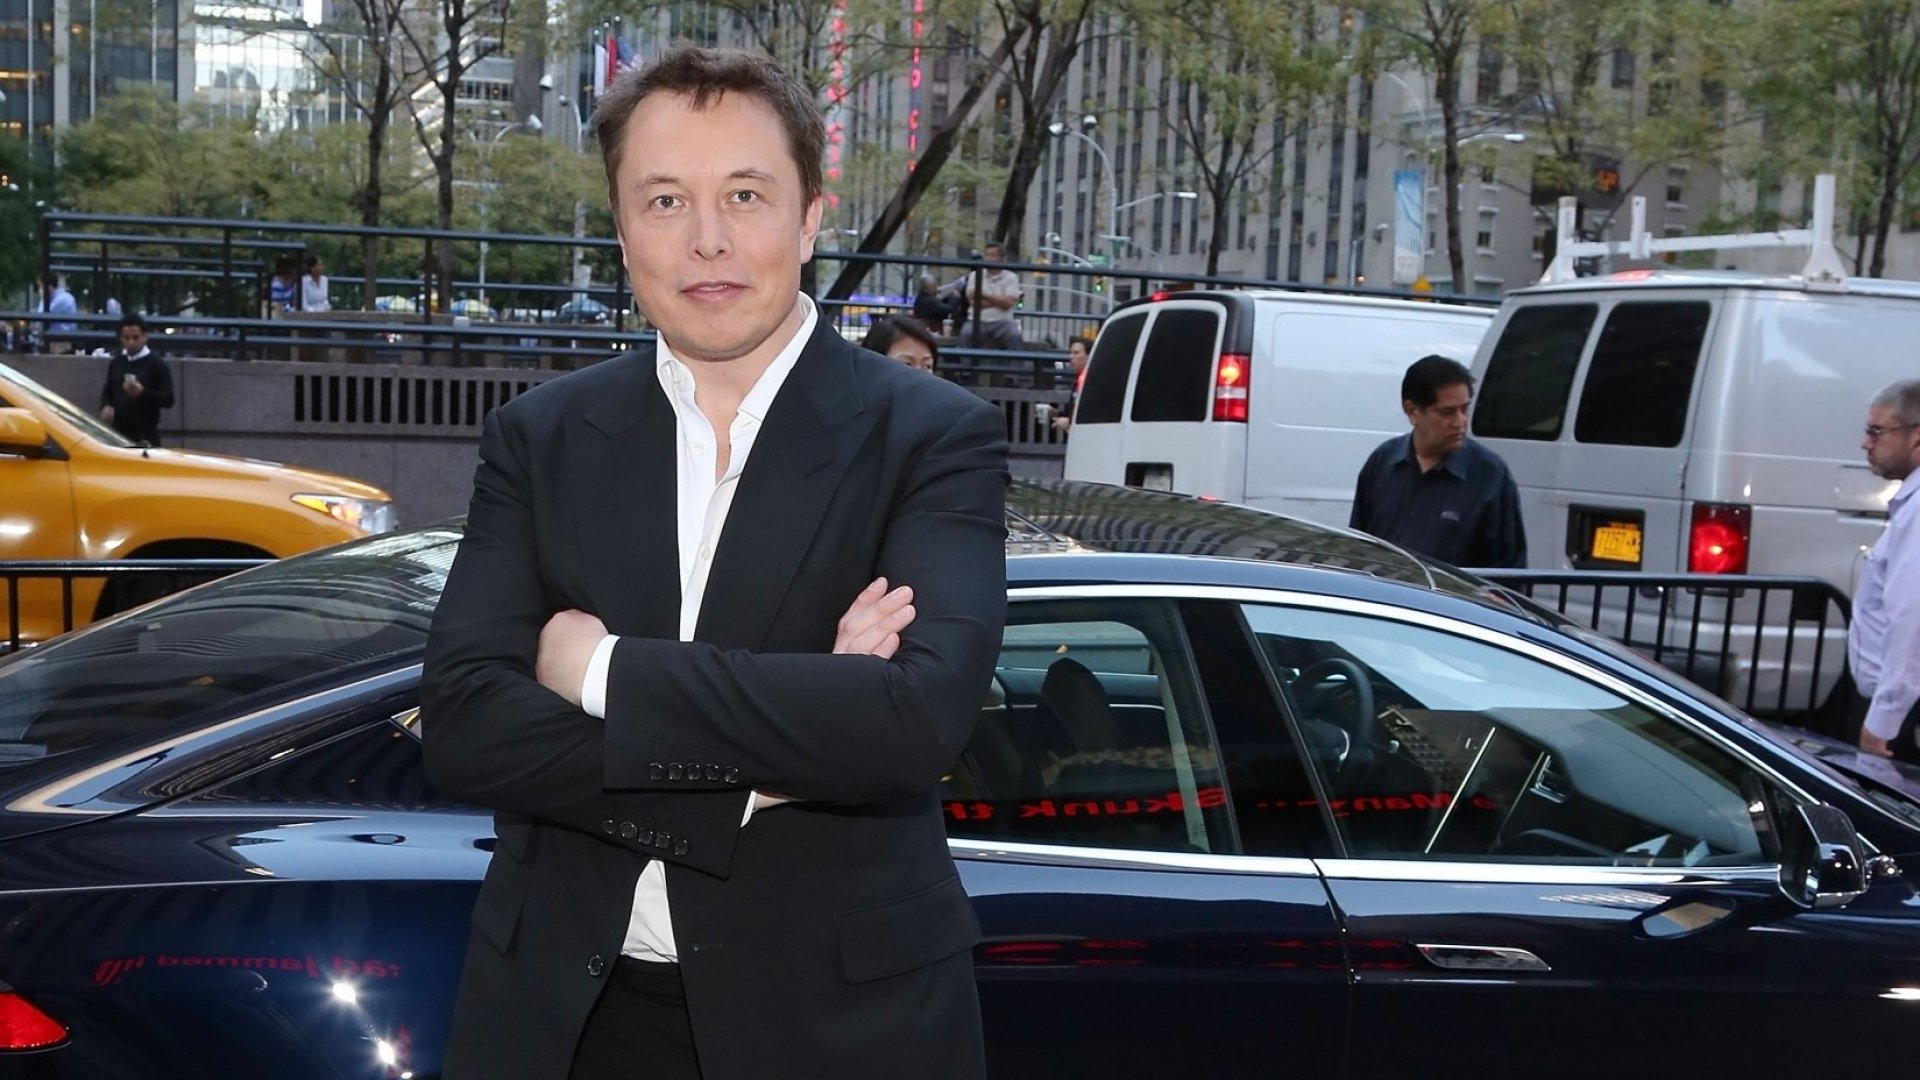 Elon Musk in front of a Tesla in New York City.